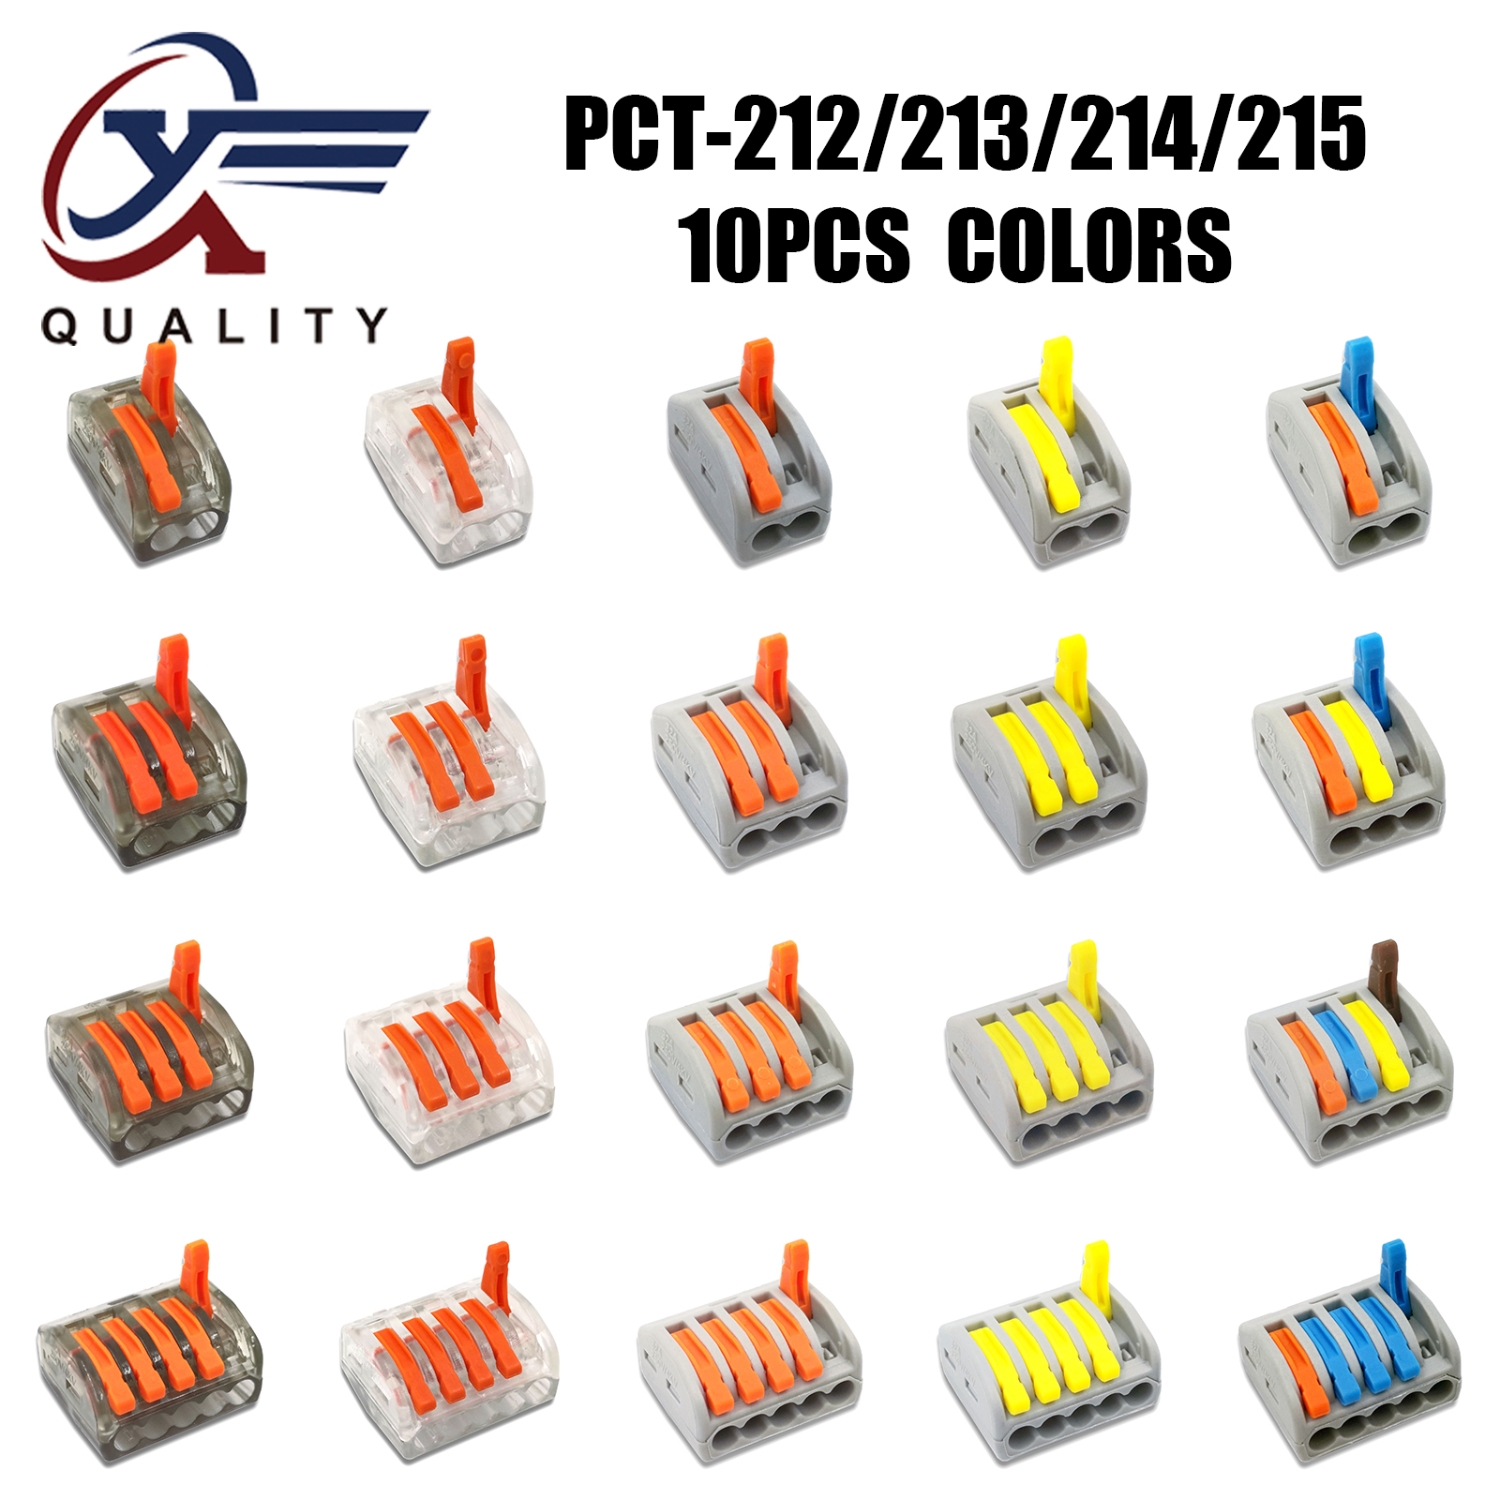 10PCS Electrical Wiring Terminals Cage Spring Universal Fast Terminal Household Connectors For Connection